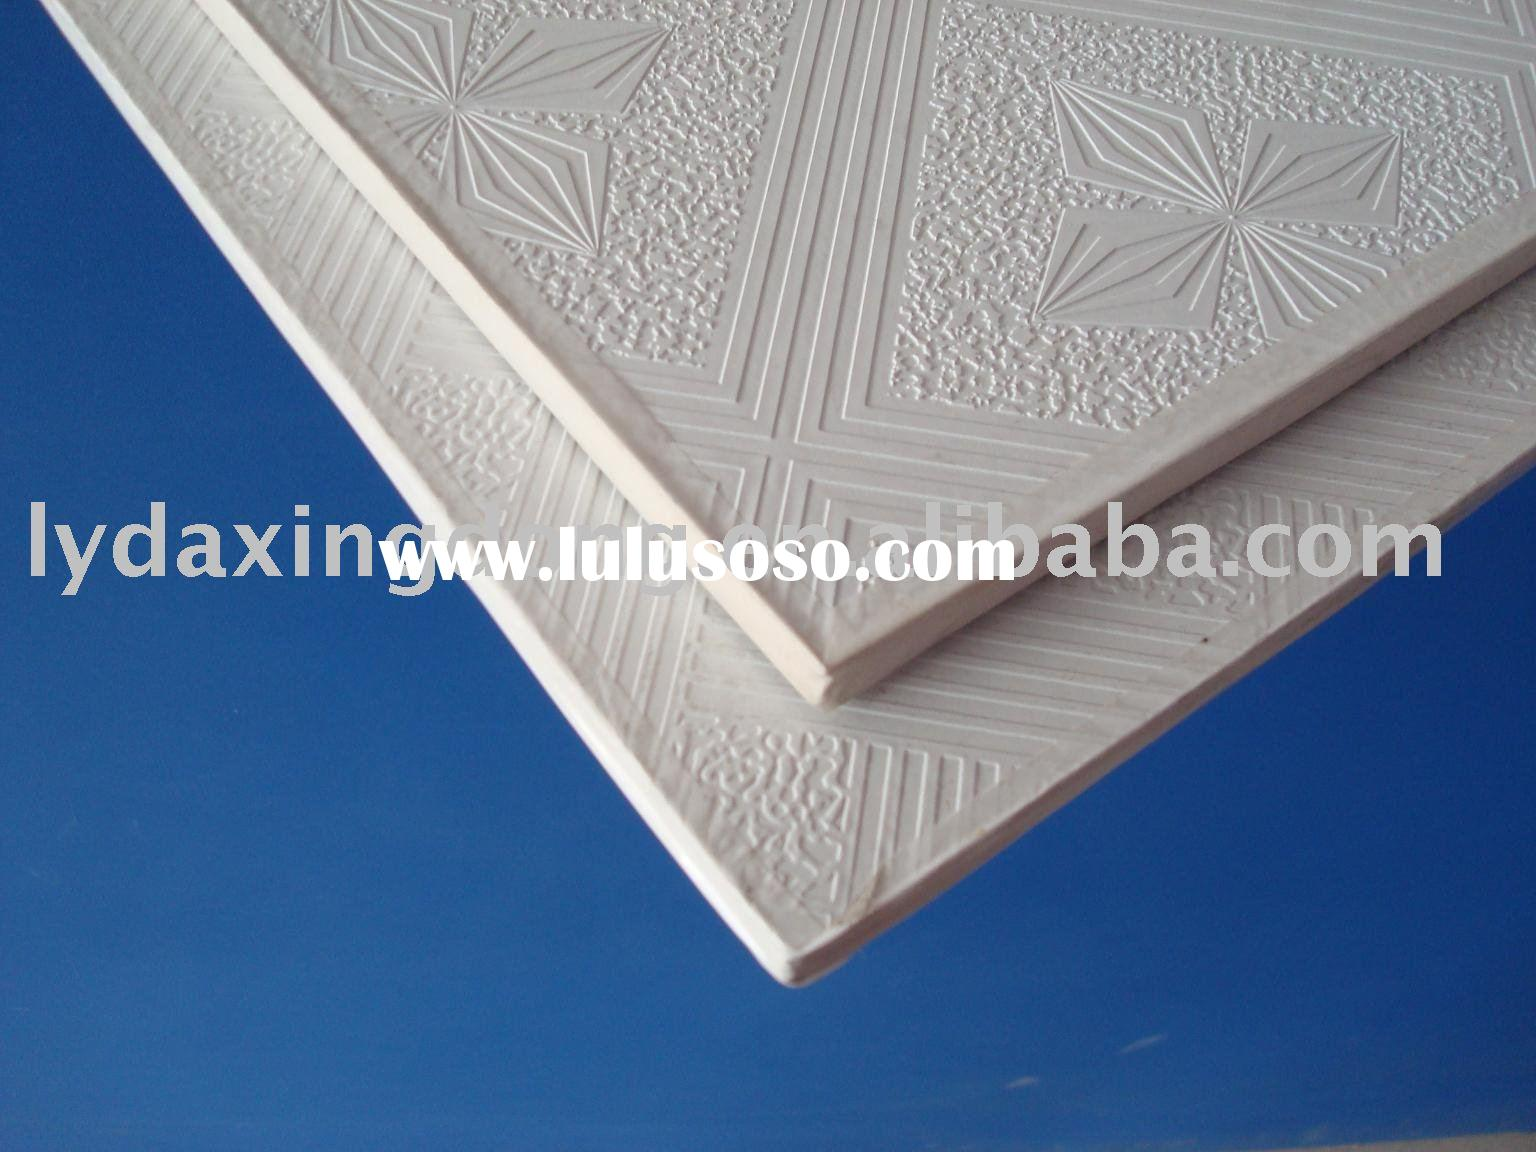 PVC laminated gypsum celing board